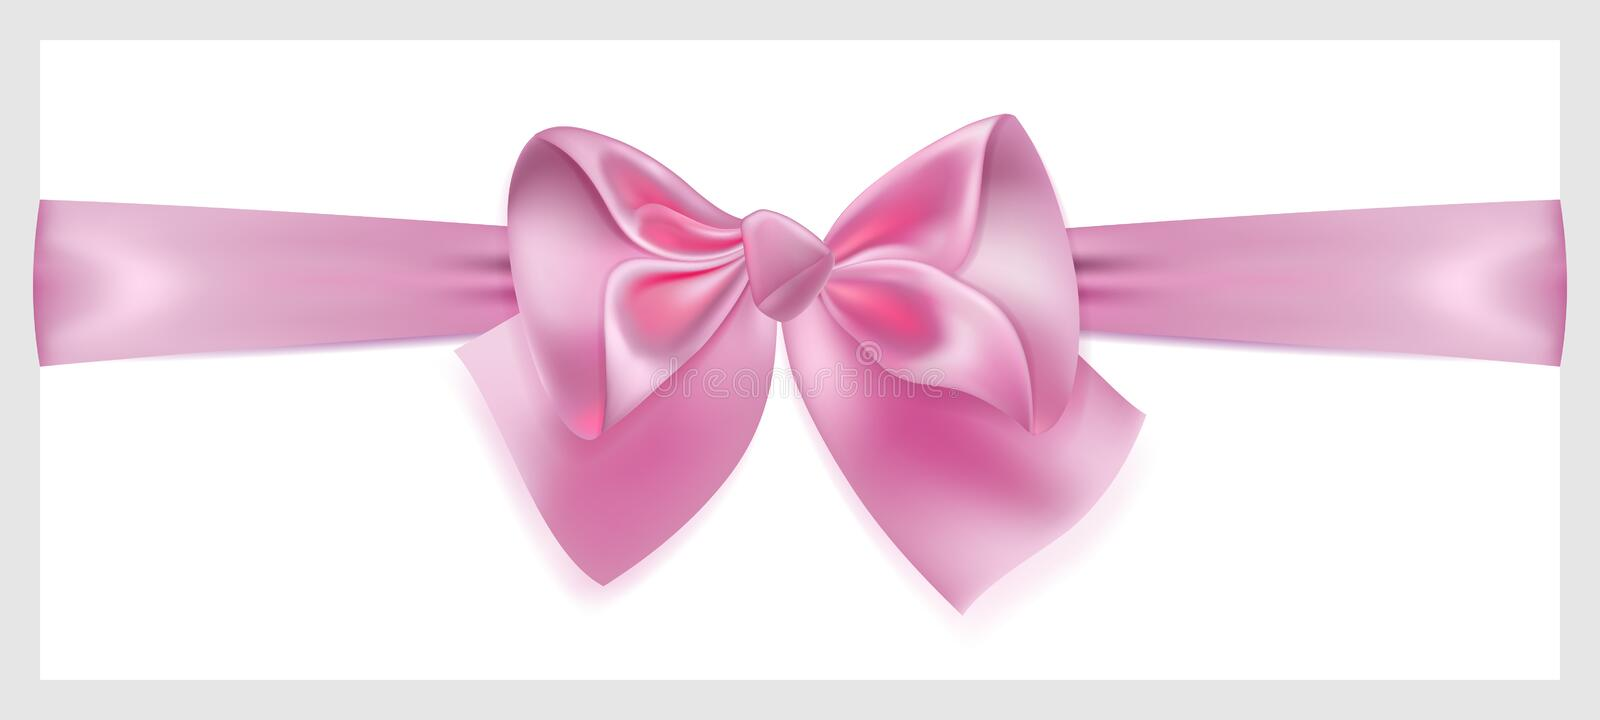 Pink bow with ribbon, located horizontally royalty free illustration